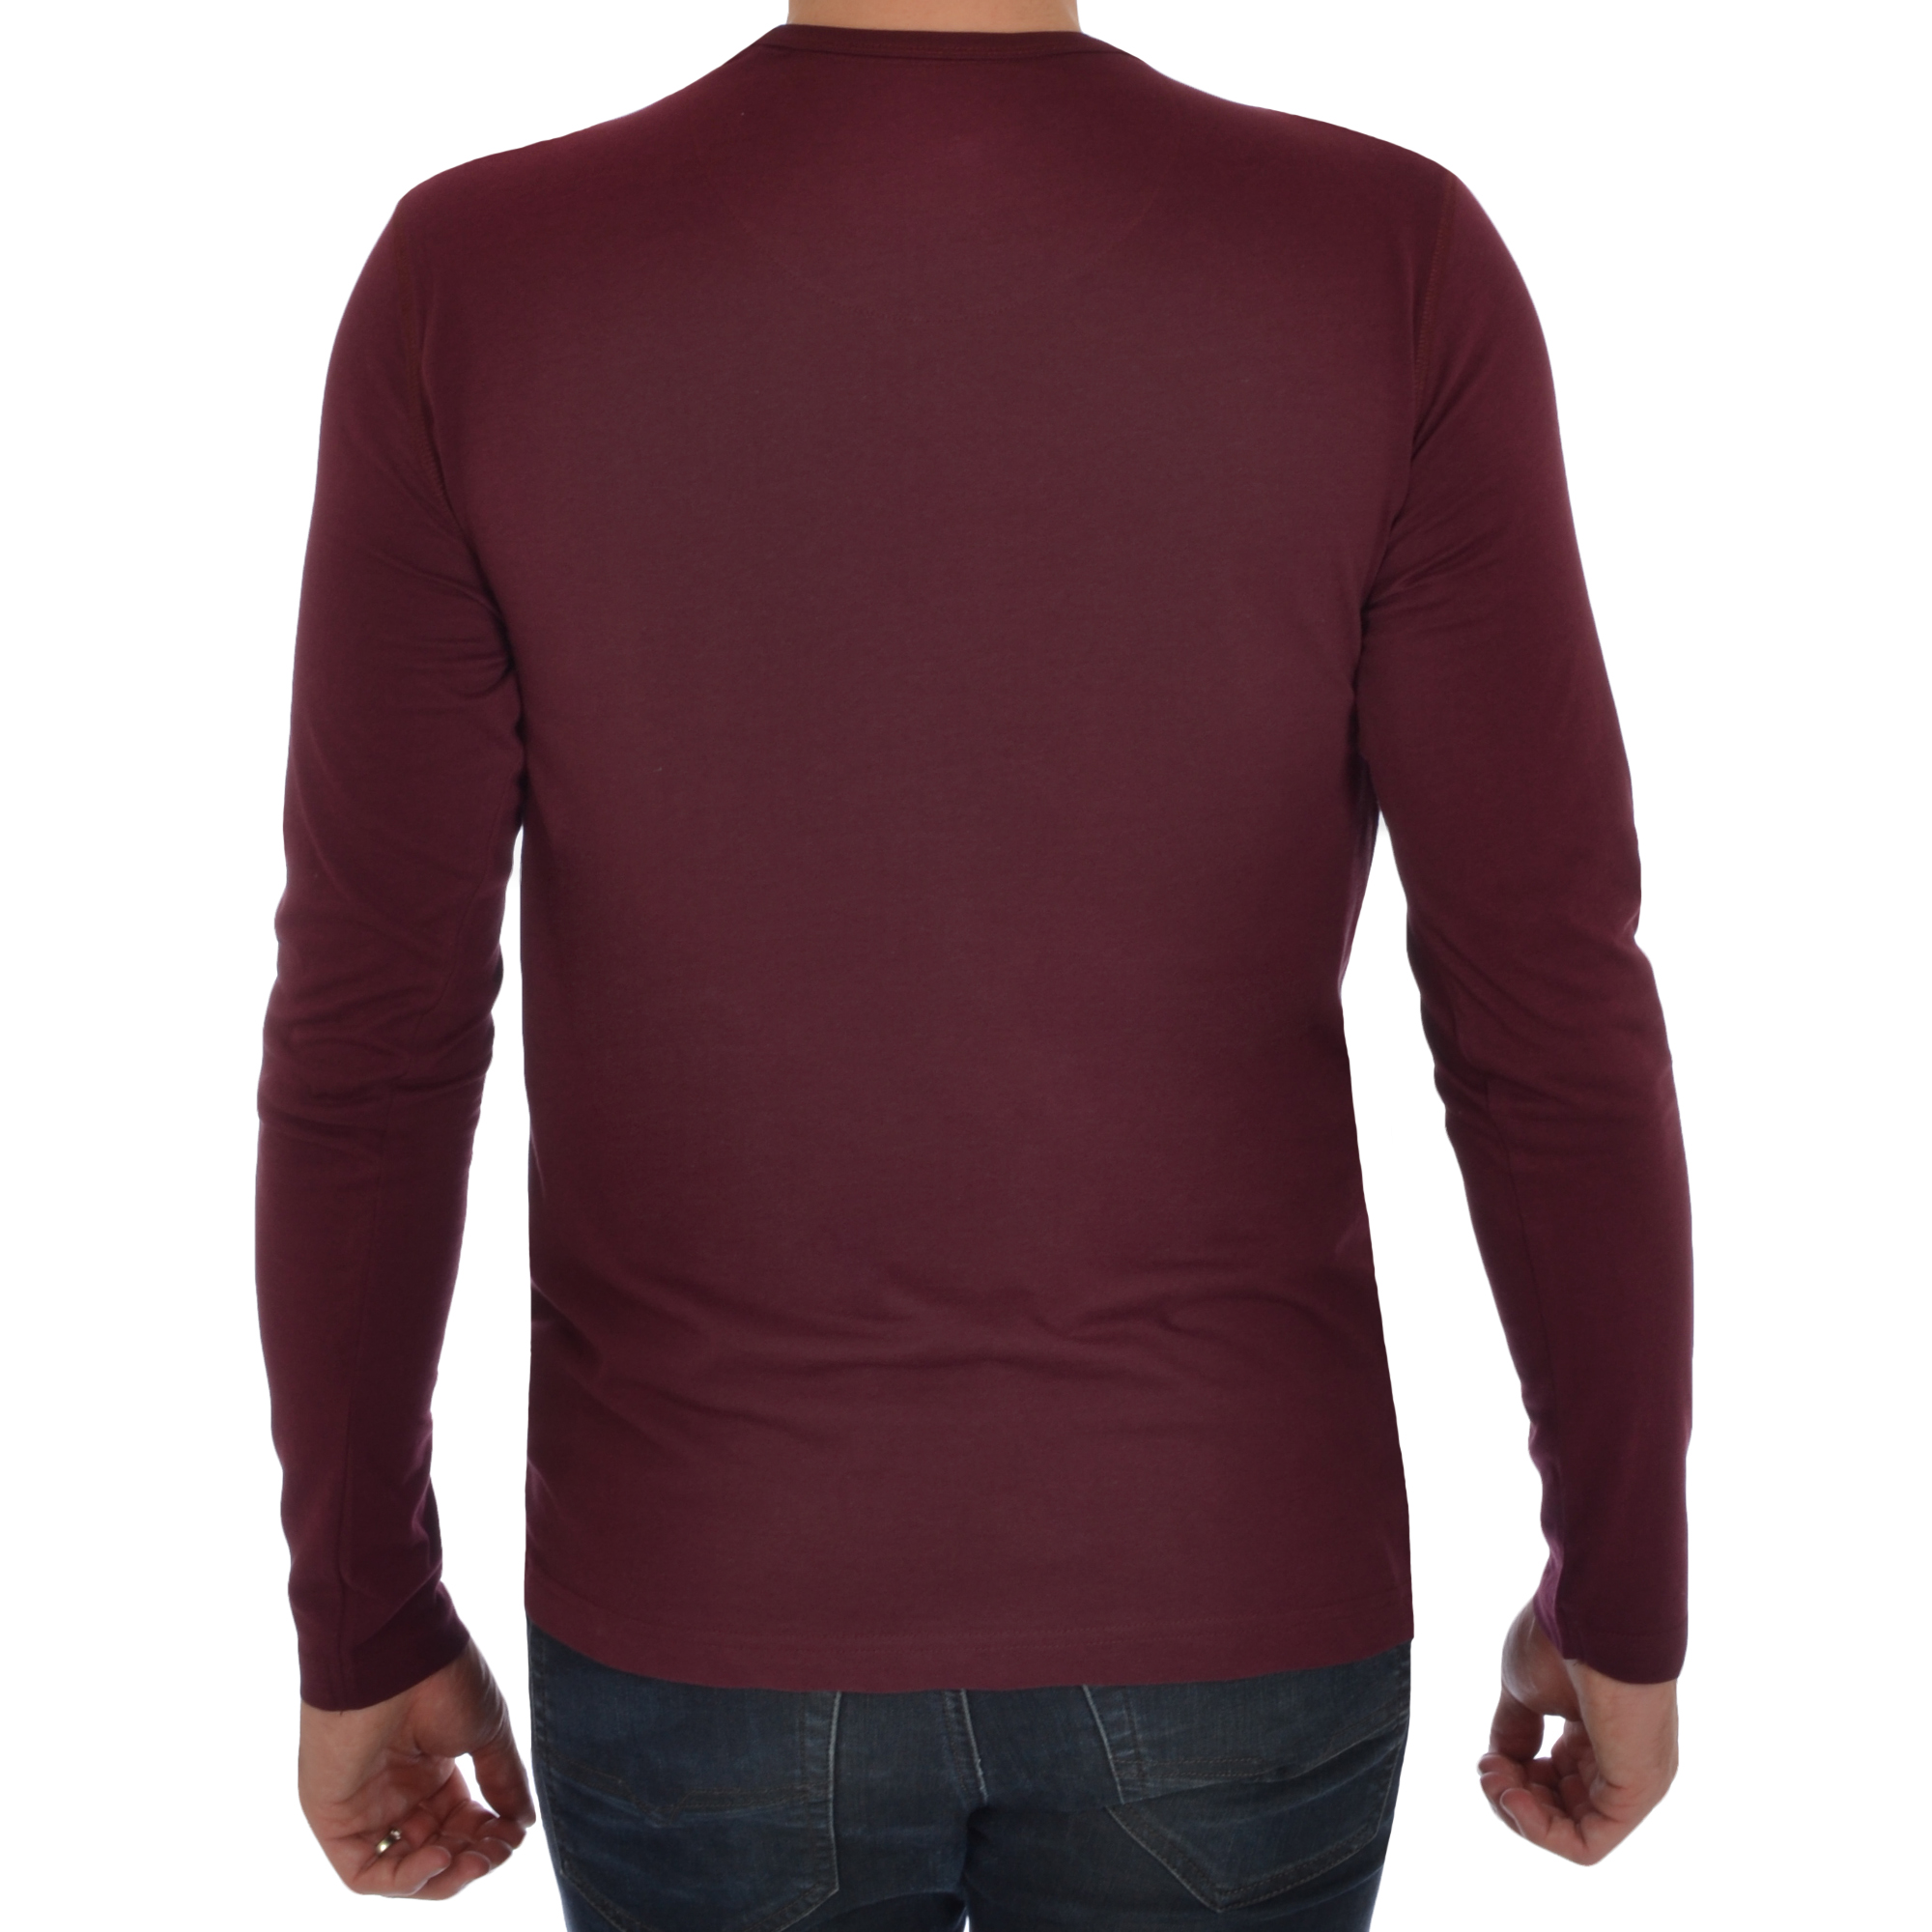 Brave Soul Mens Long Sleeve T-shirt Plain Crew Neck Casual Top L ... f7afbc23a20